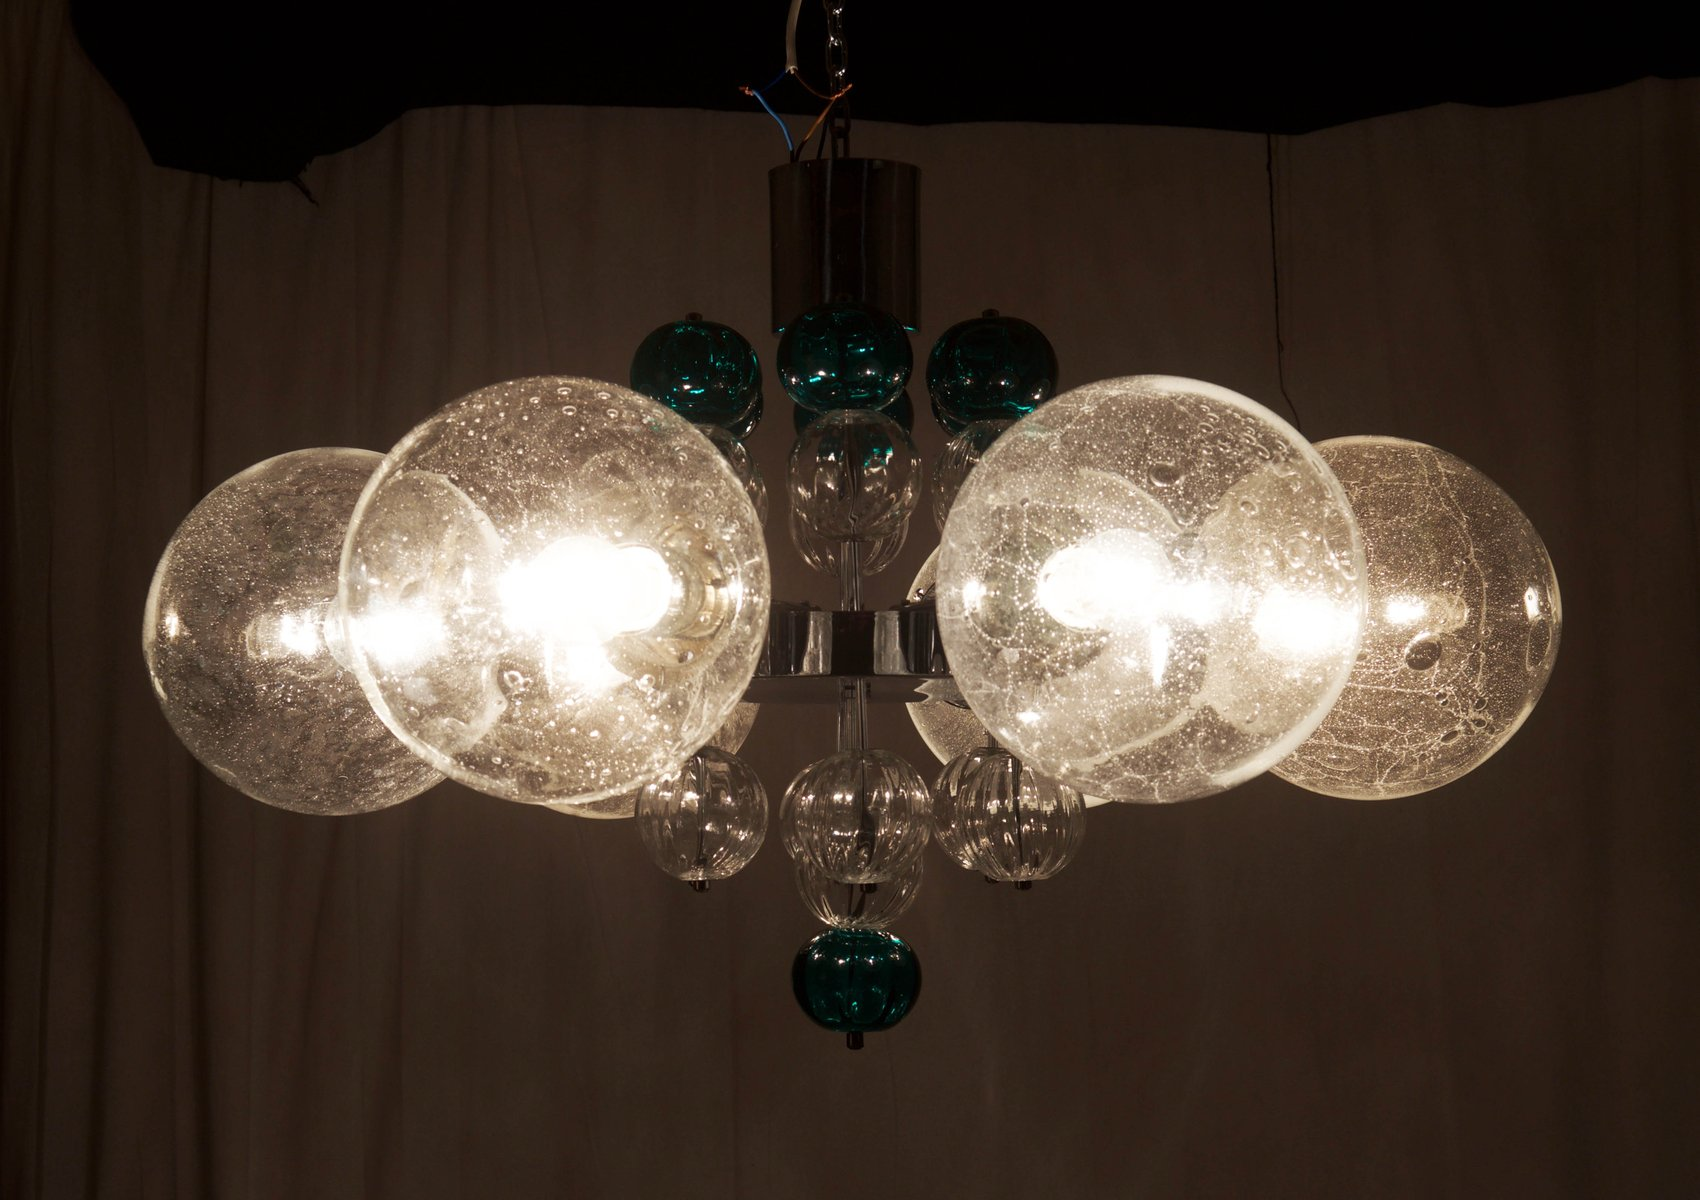 Chandelier with Handblown Glass Globes from Kamenicky Senov